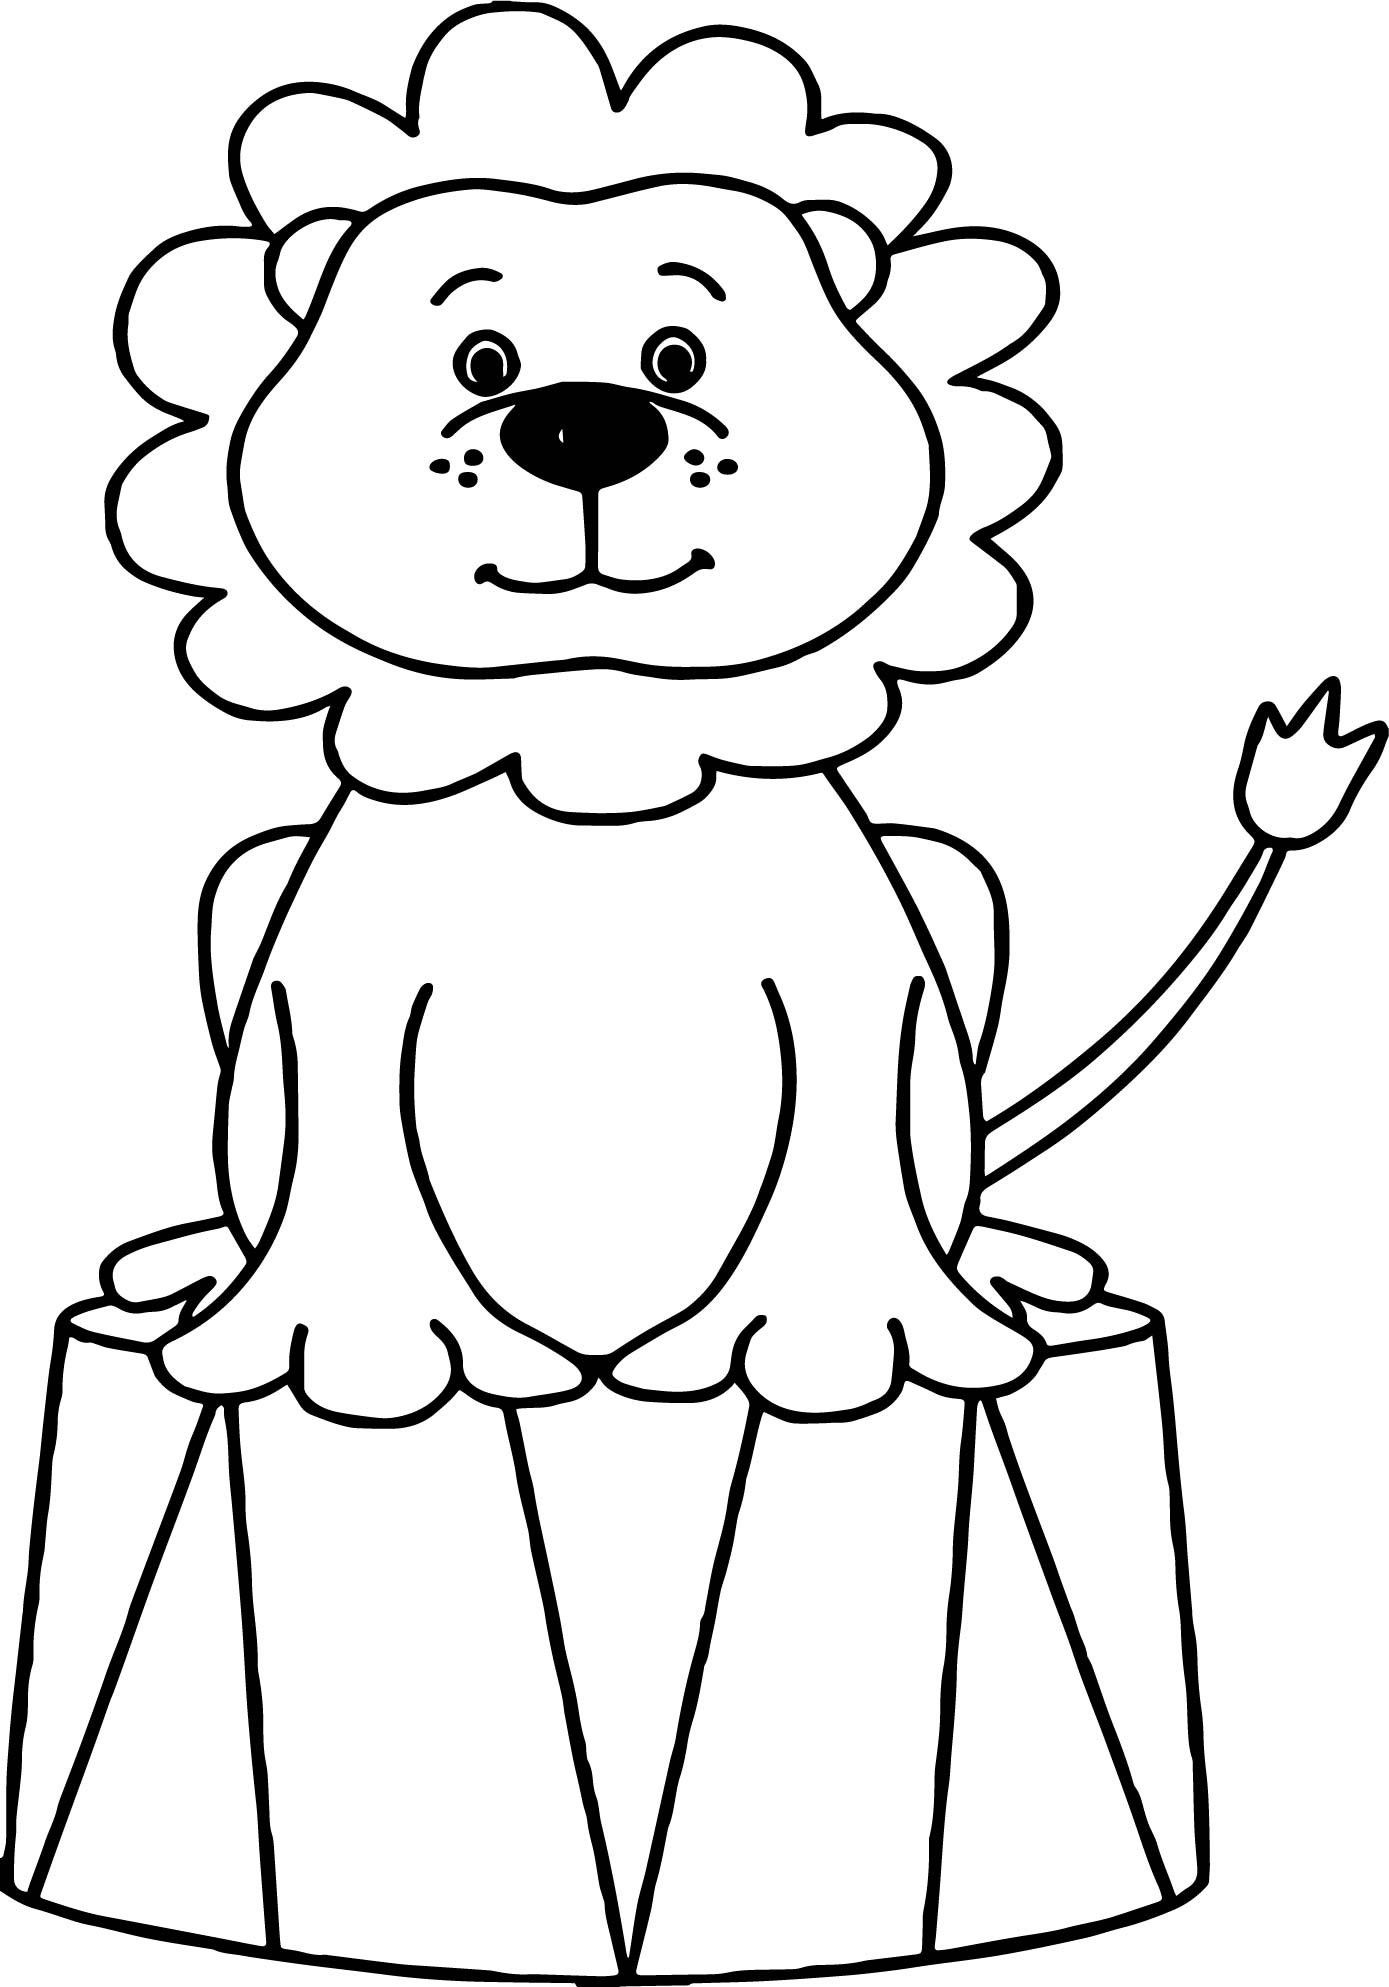 1389x1987 Printable Coloring Pages Of Circus Animals New Circus Coloring